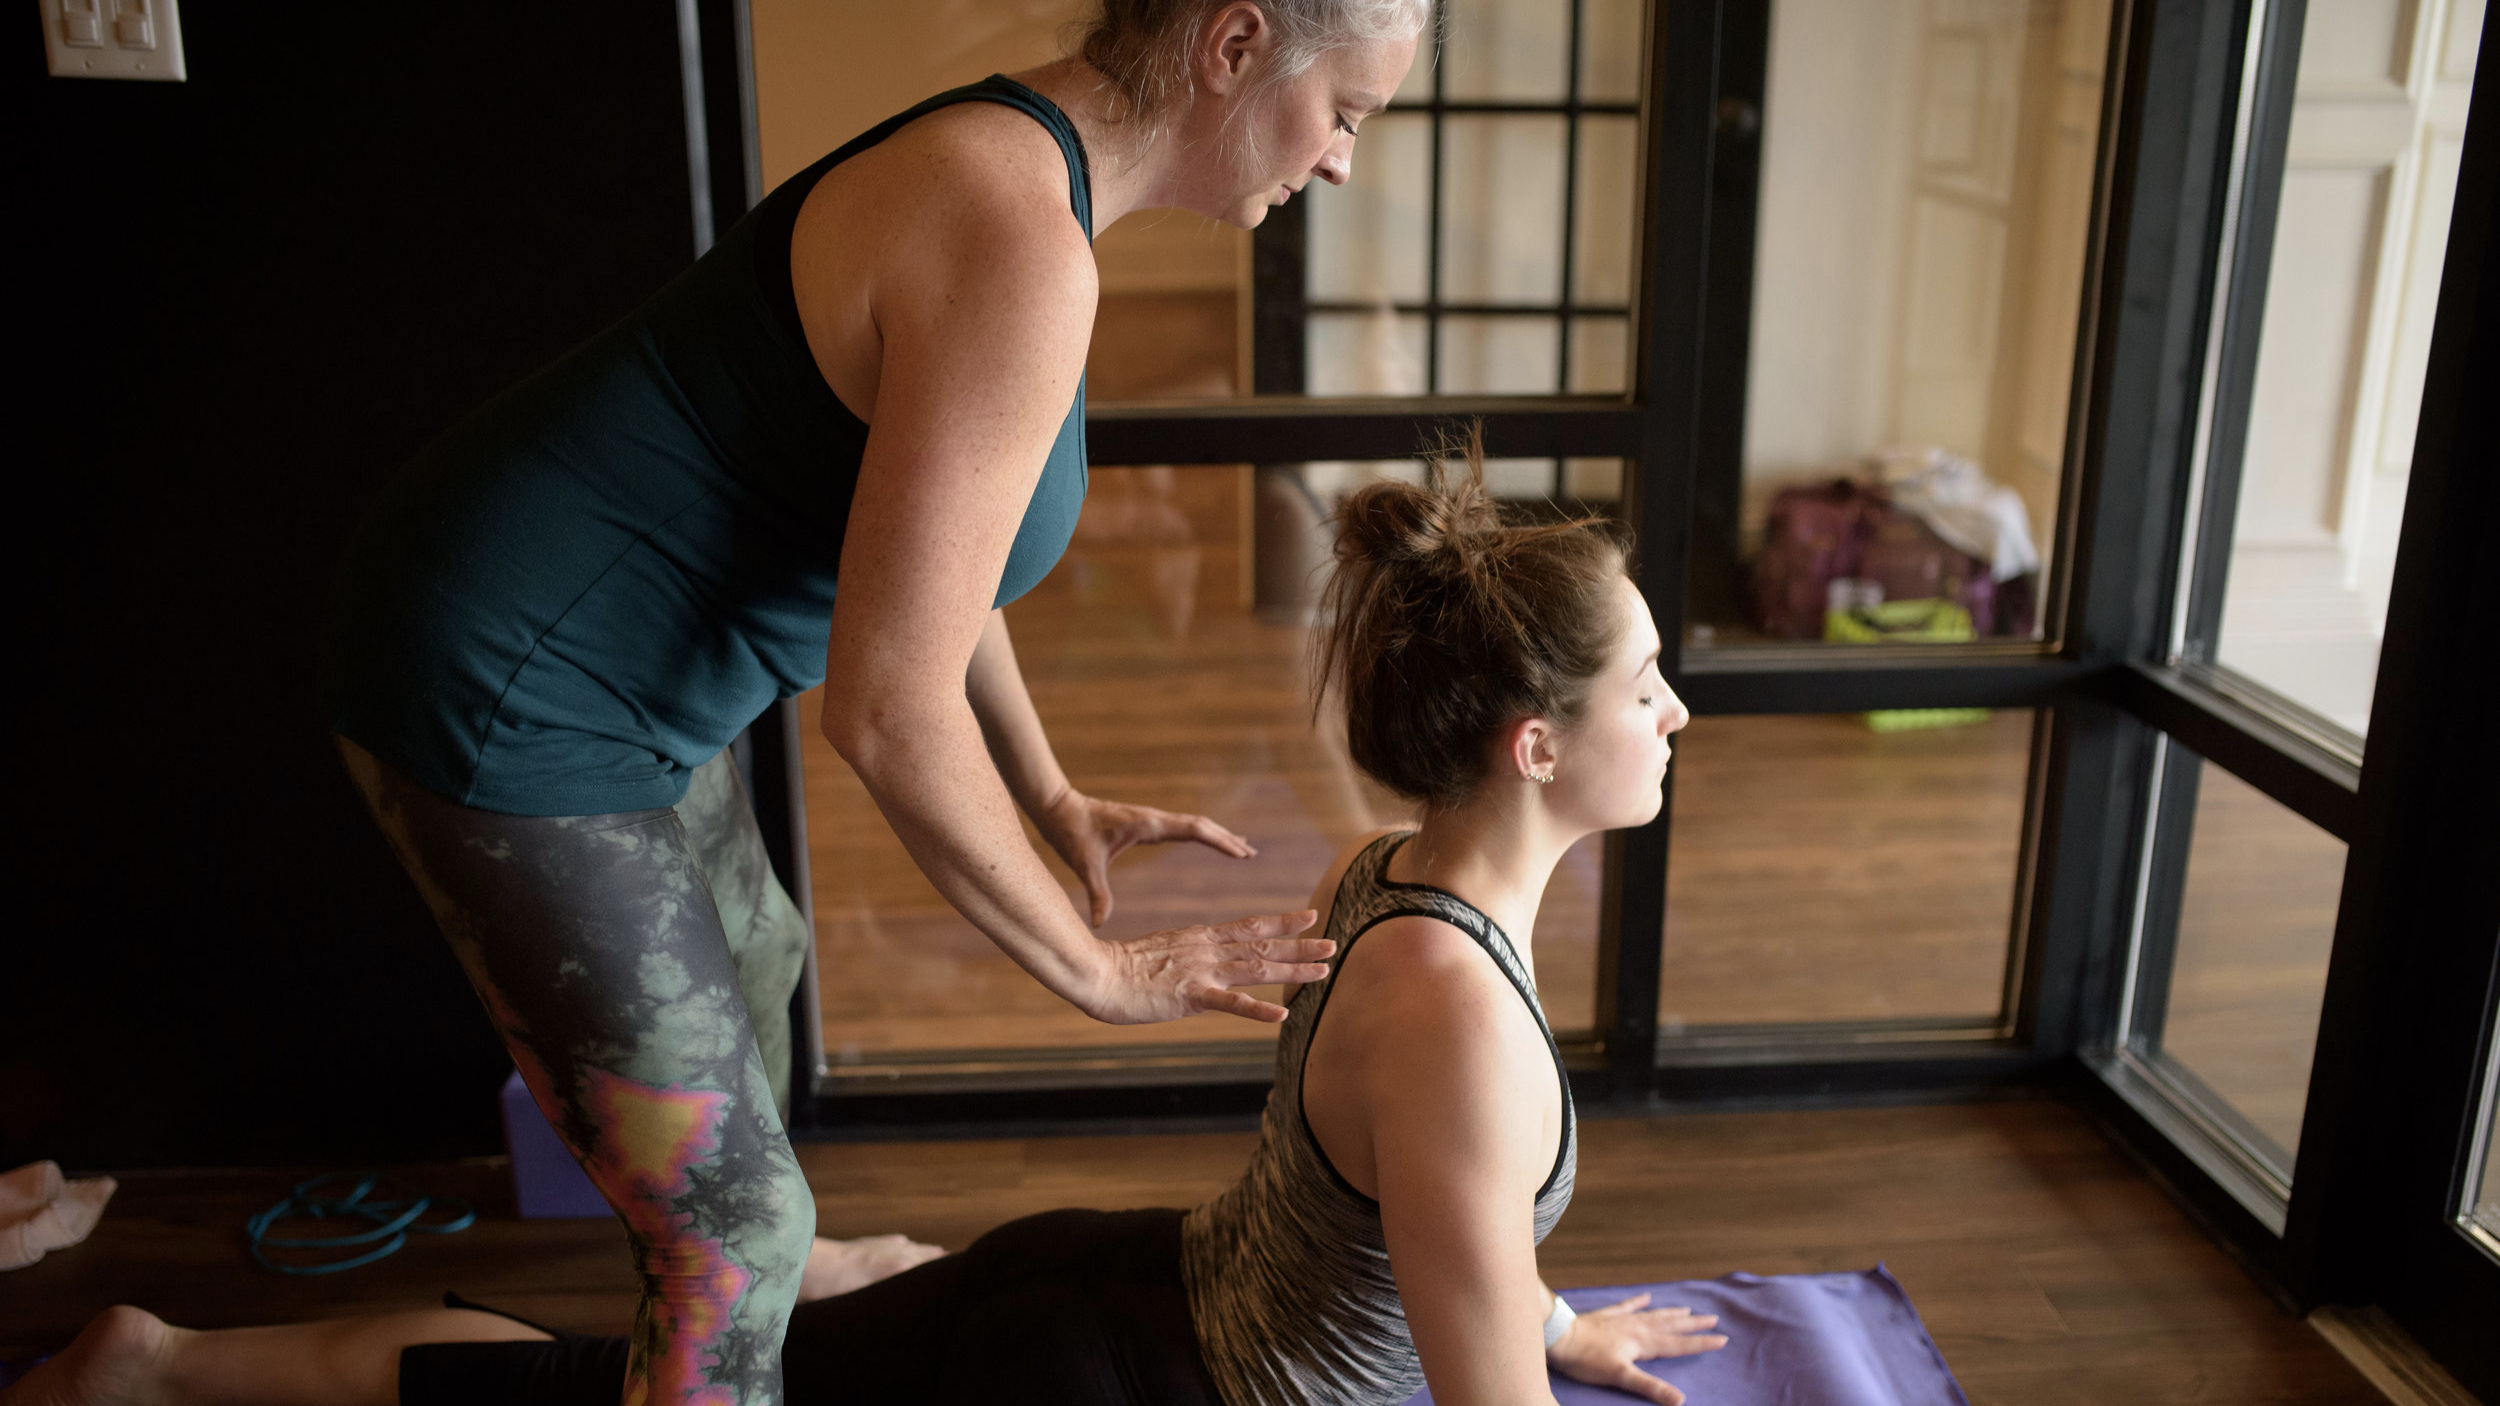 immerse-photography-ignite-yoga-dayton-summer19-FULLRES-138.jpg